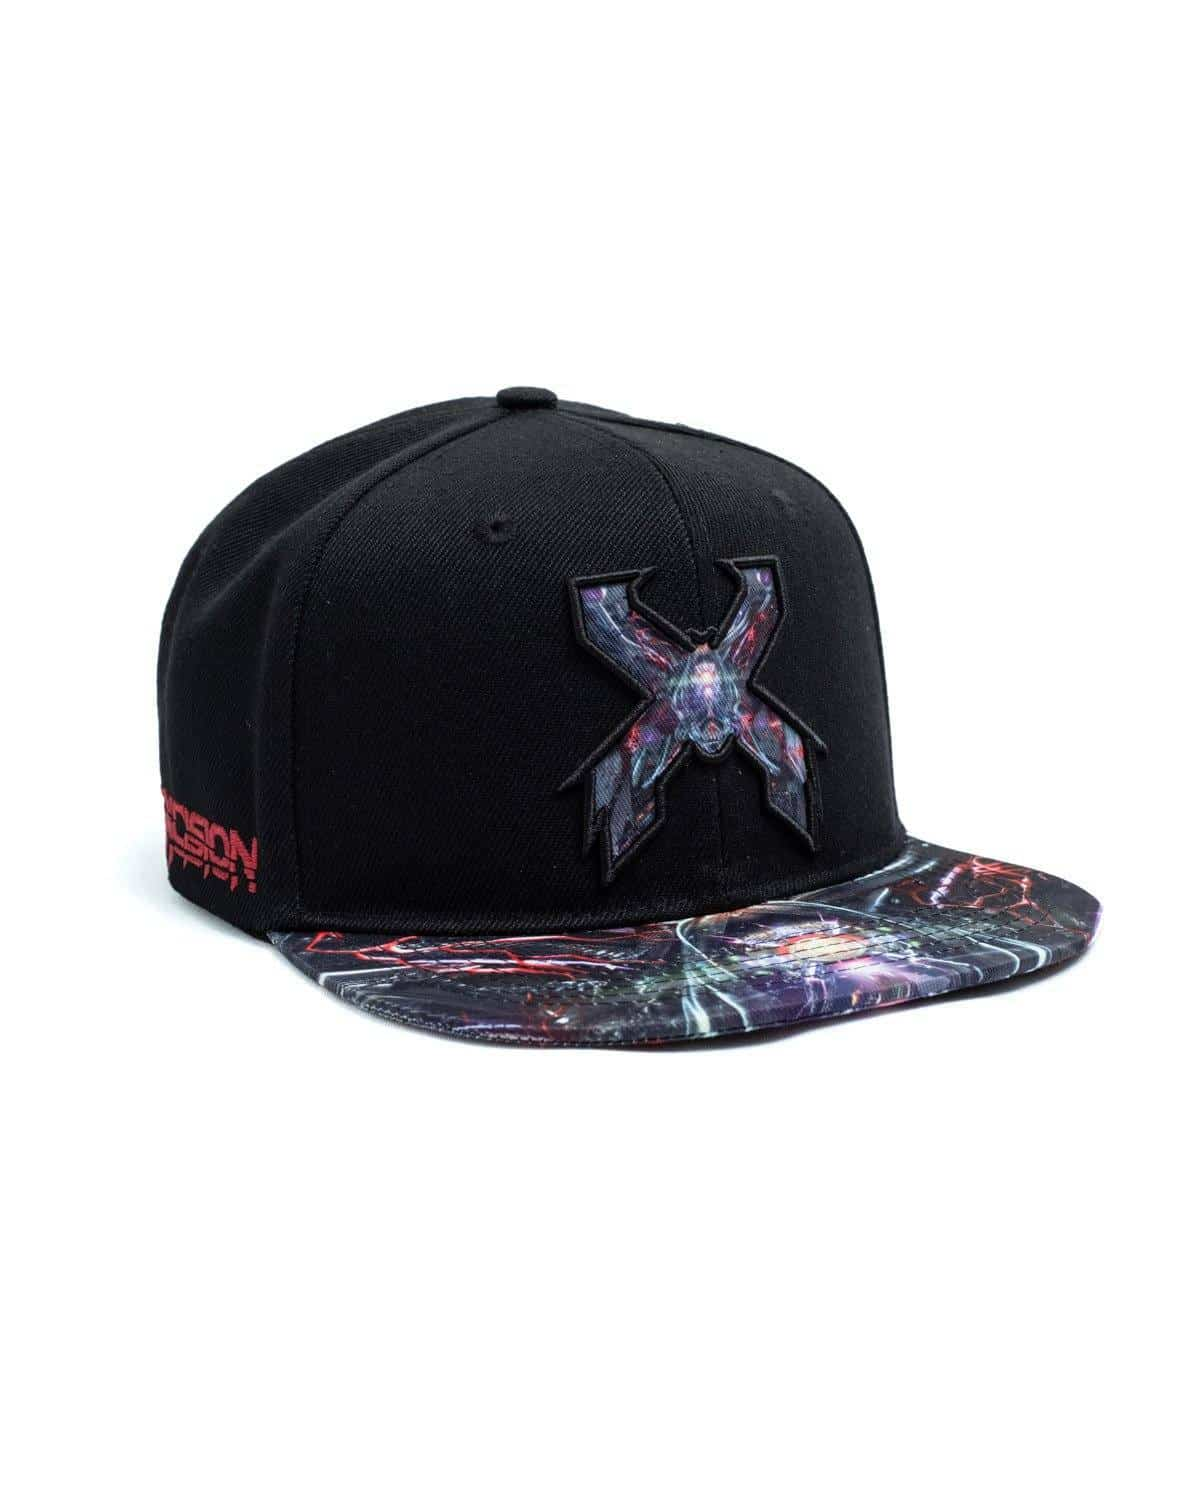 72950ba2fb7e4 EXCISION-THE-PARADOX-TOUR-2018-SNAPBACK-BLACK -RED2 2000x2000.progressive.jpg v 1532612086